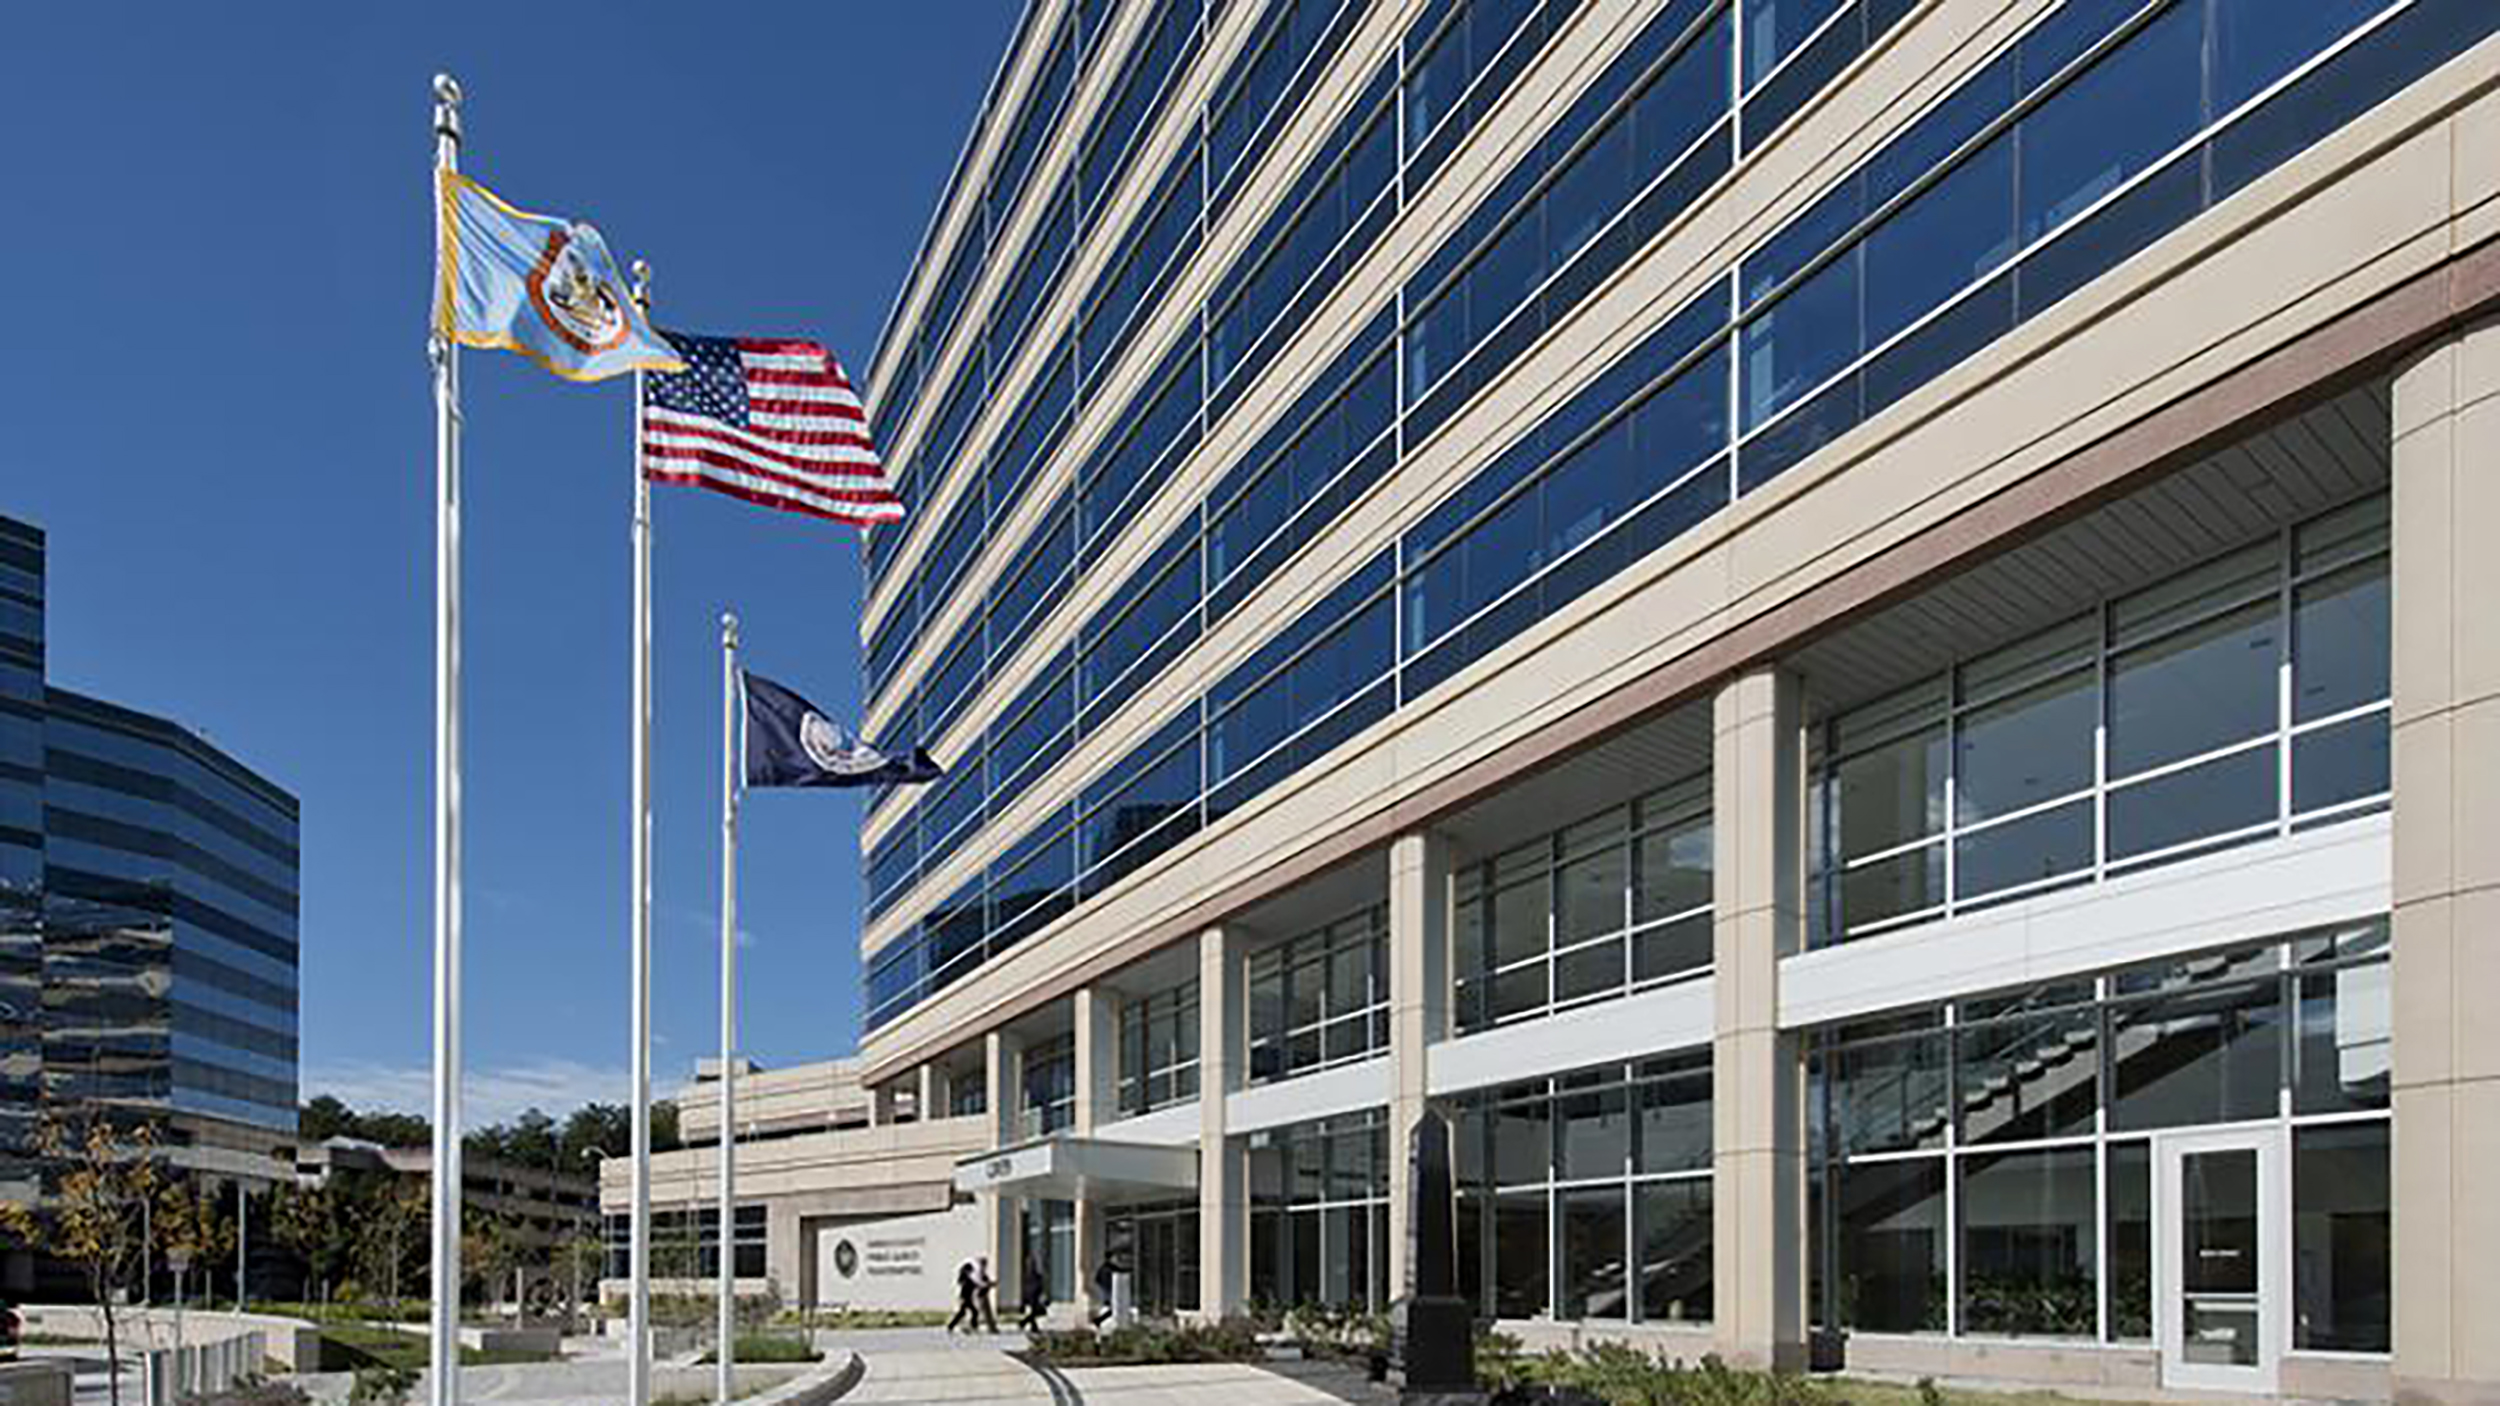 Fairfax County Public Safety Headquarters